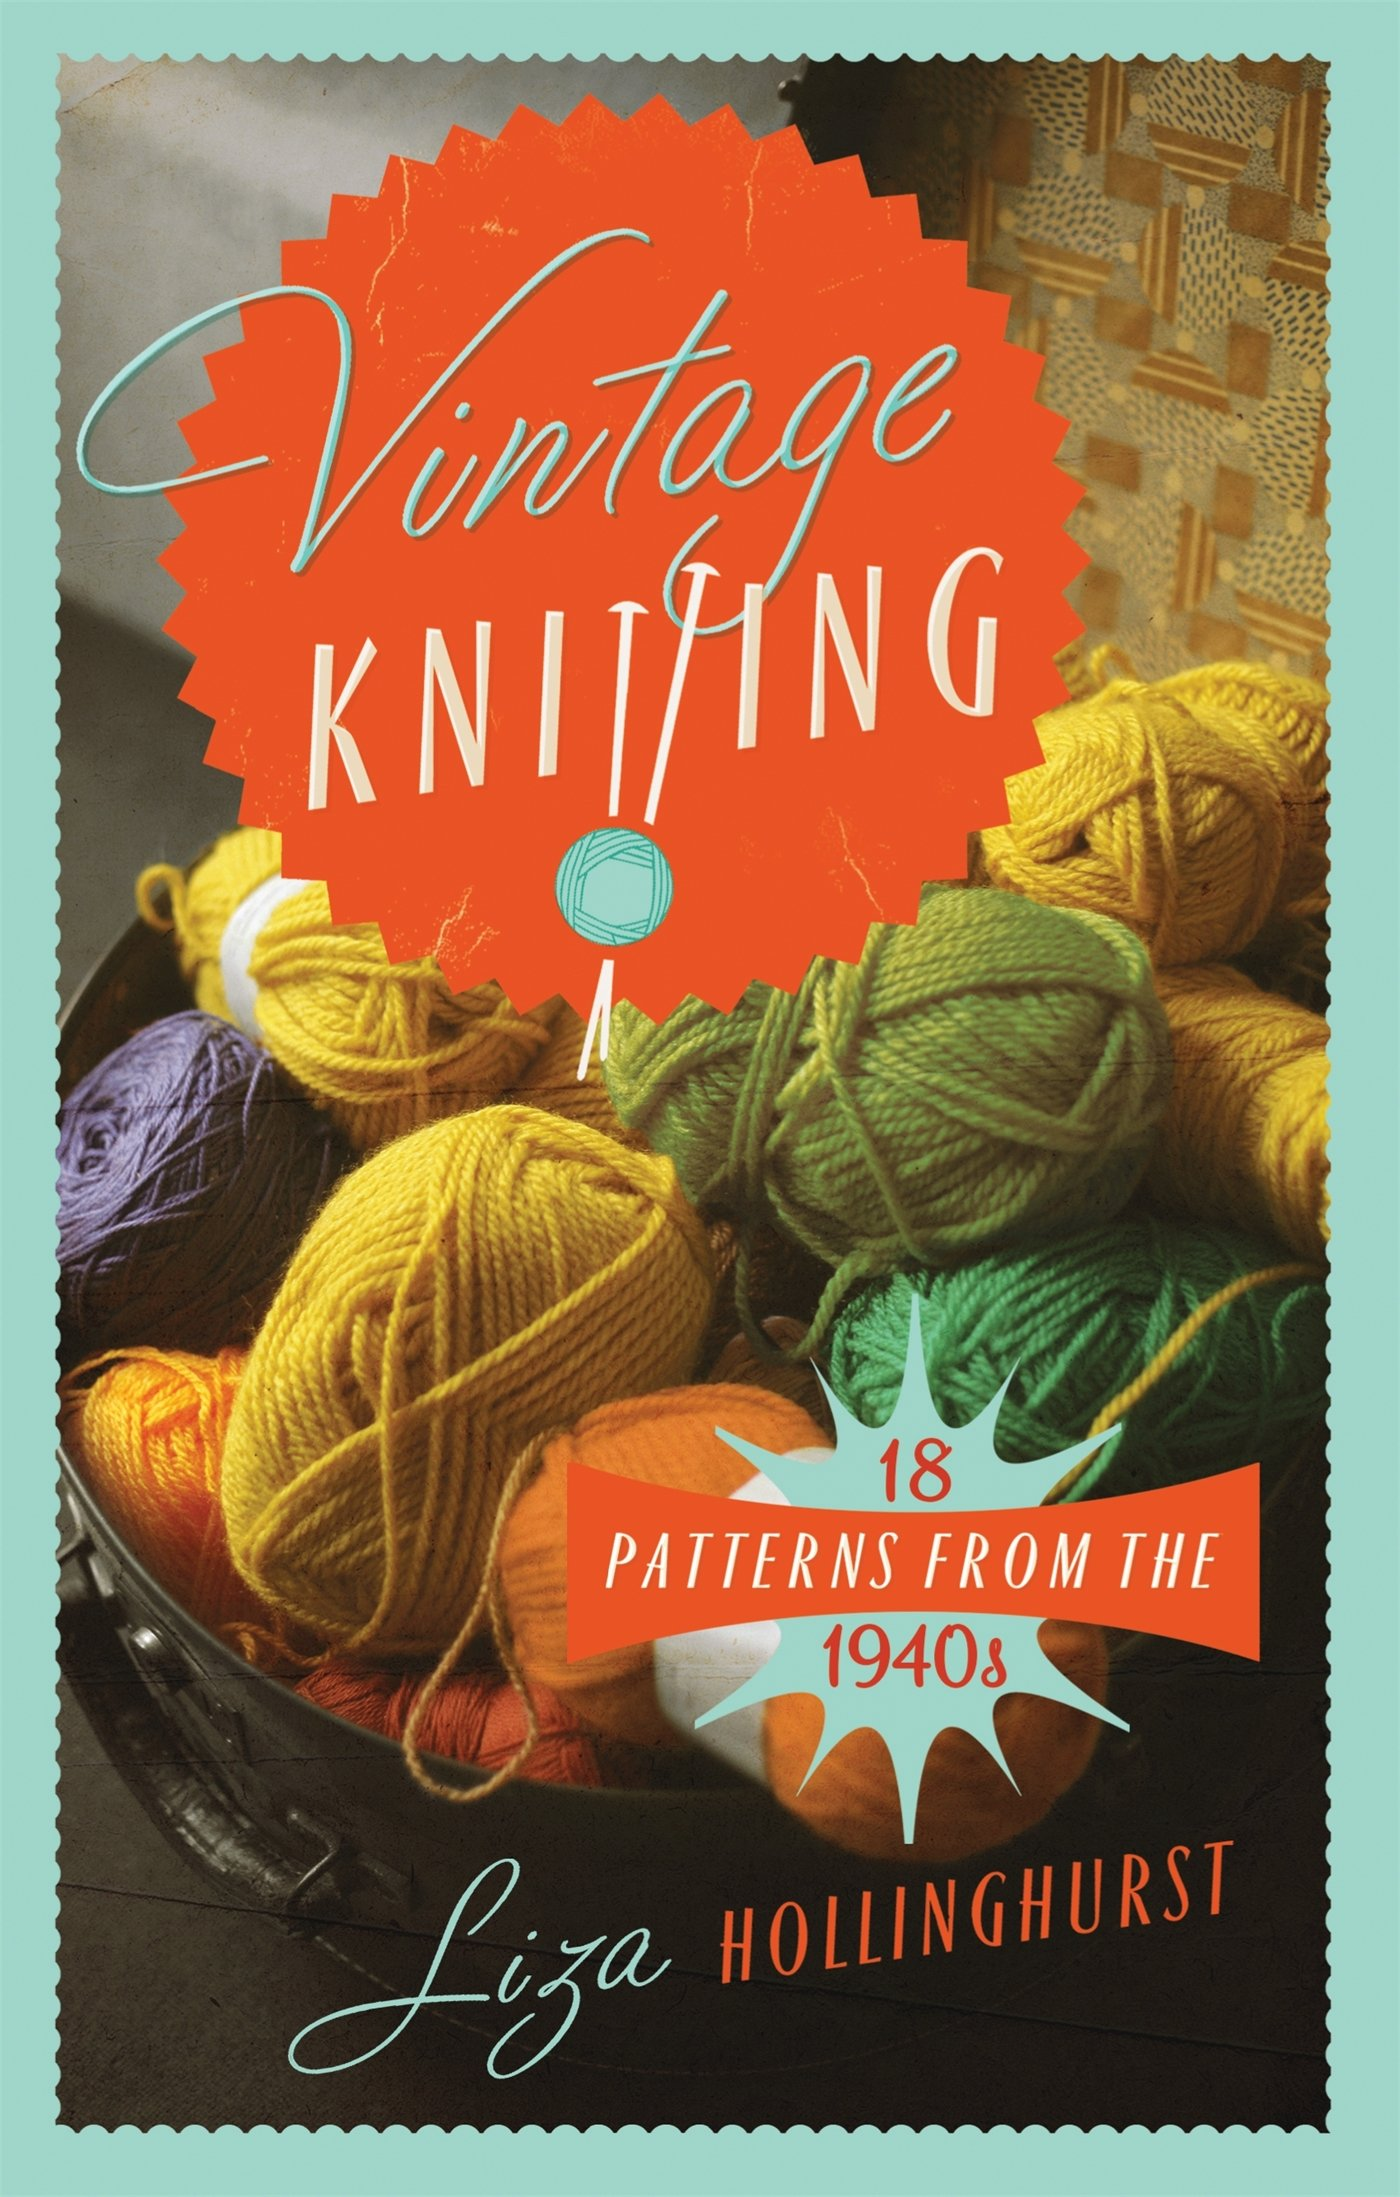 Vintage Knitting: 18 Patterns from the 1940s (Old House): Amazon.co ...